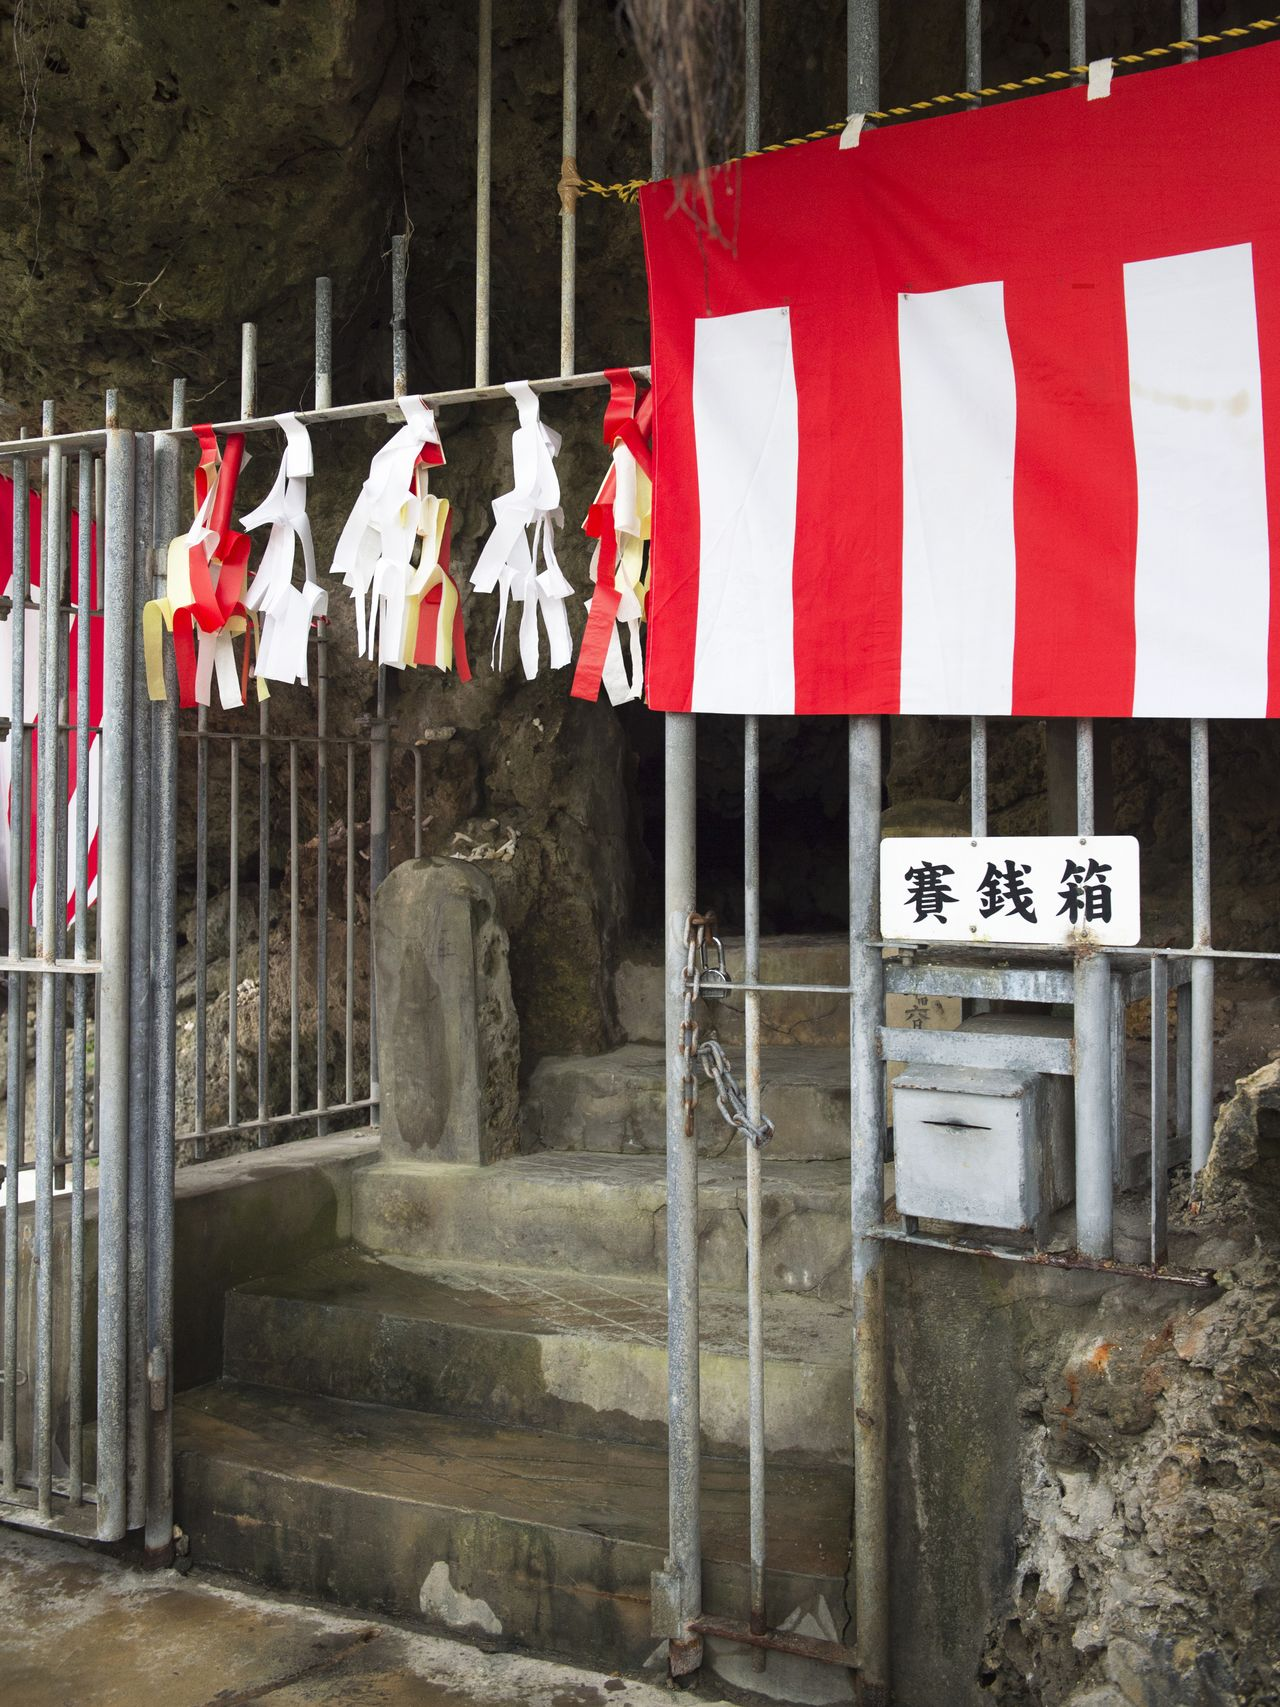 The entrance to the cave is usually closed, but people can enter for Lunar New Year ceremonies.